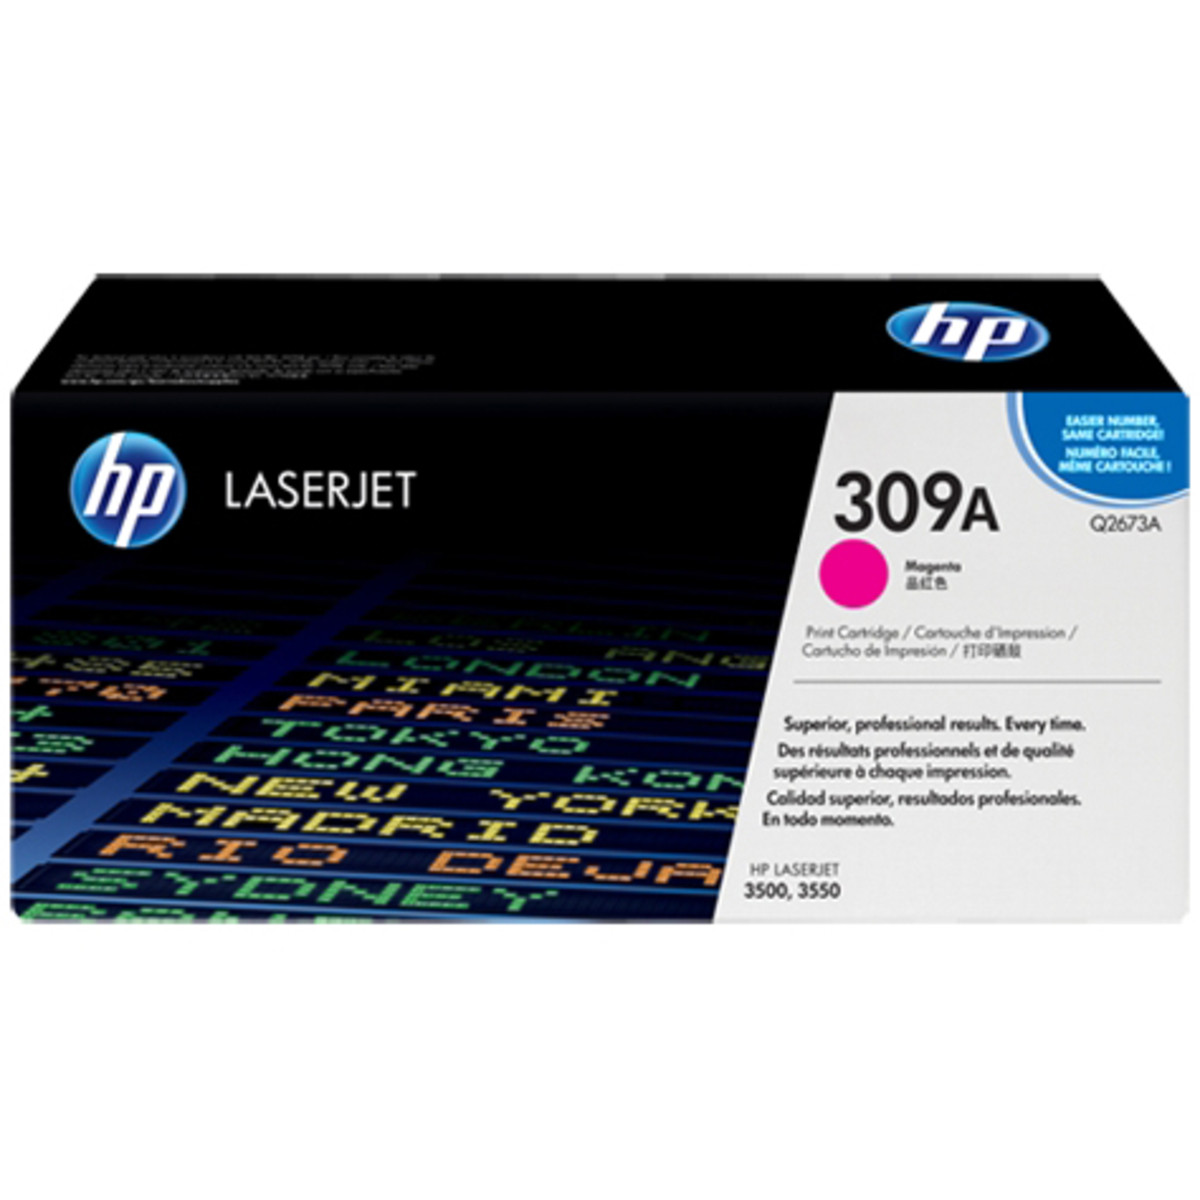 HP 309A (Q2673A) Magenta Toner Cartridge